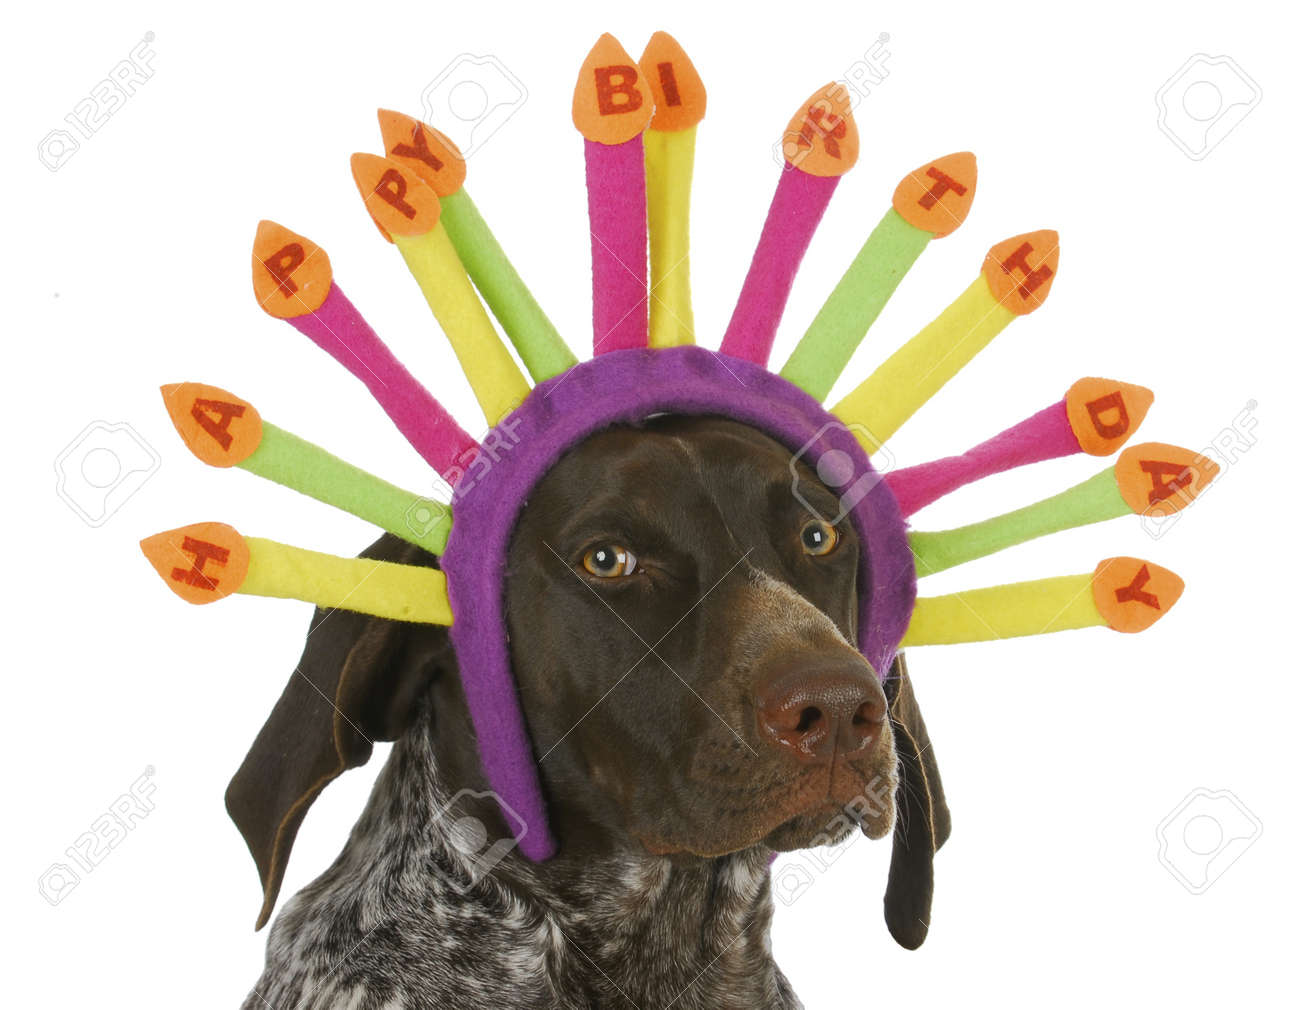 happy birthday dog - german short haired pointer wearing birthday